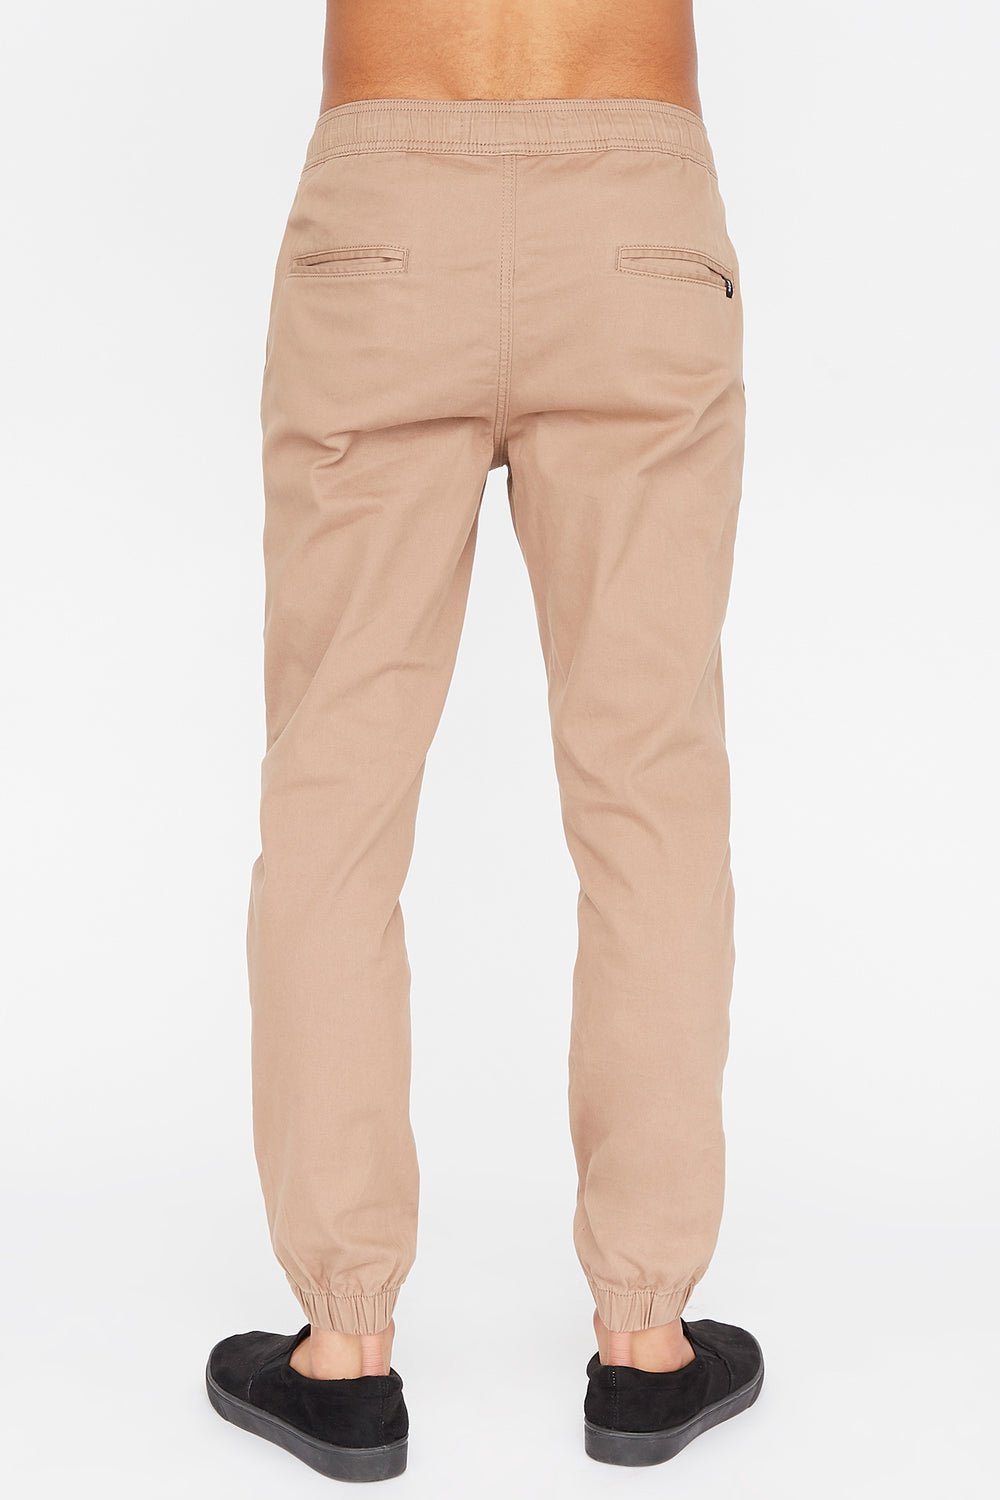 Jogger West49 Homme Sable